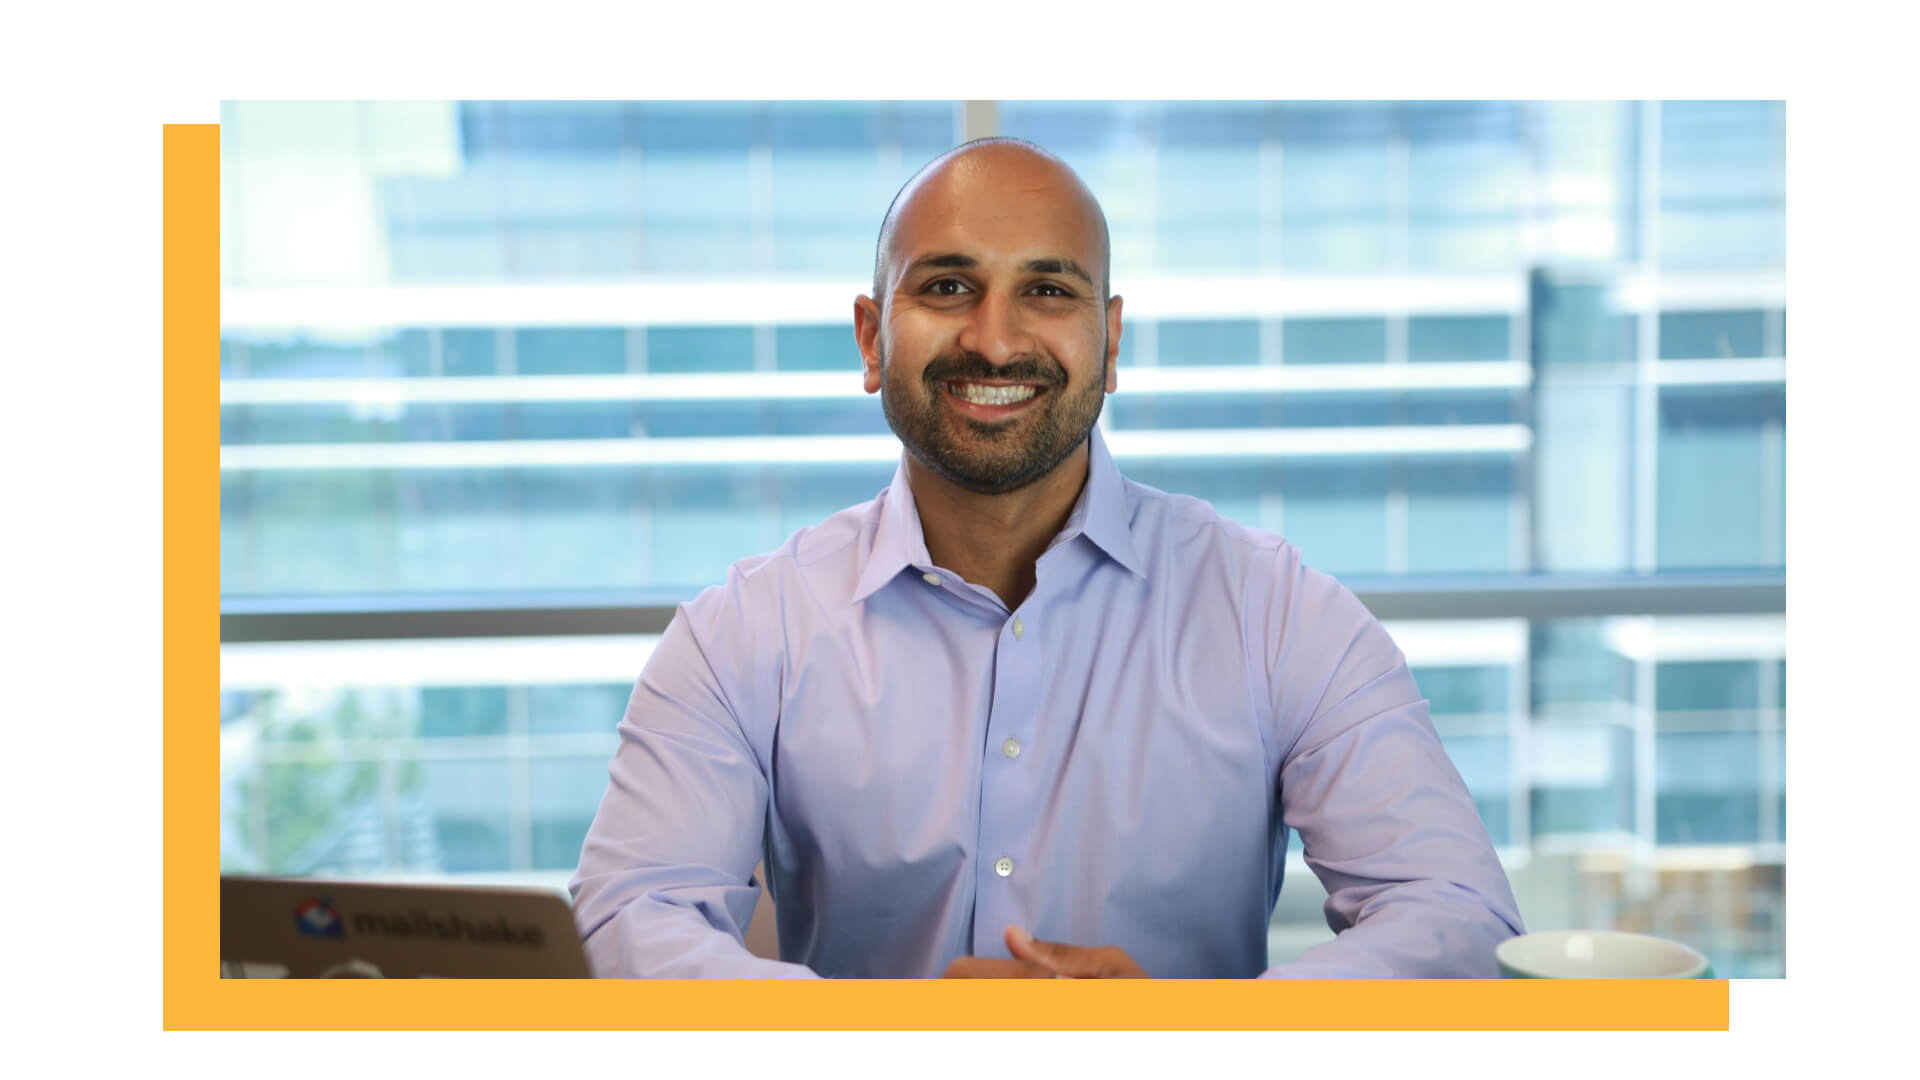 Sujan Patel is the co-founder of Mailshake and a key champion behind making Mailshake more diverse.